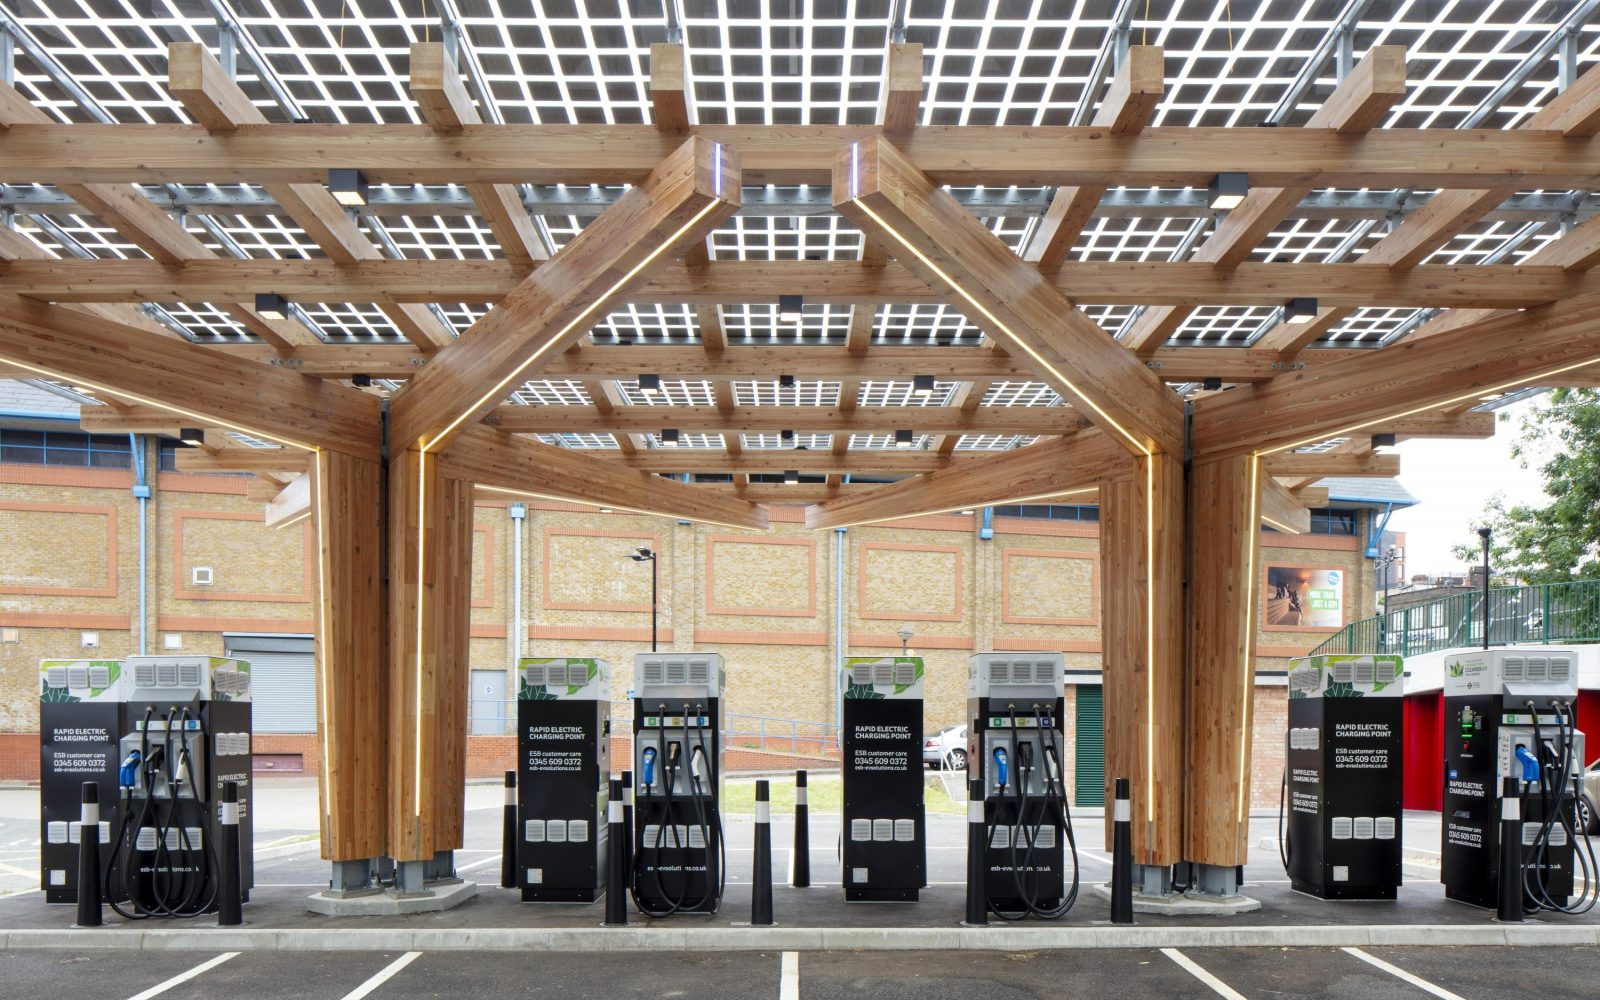 TfL's Glass Yard charging hub sits just outside the South Circular, which the Ultra Low Emission Zone is set to be expanded to. Image: TfL.